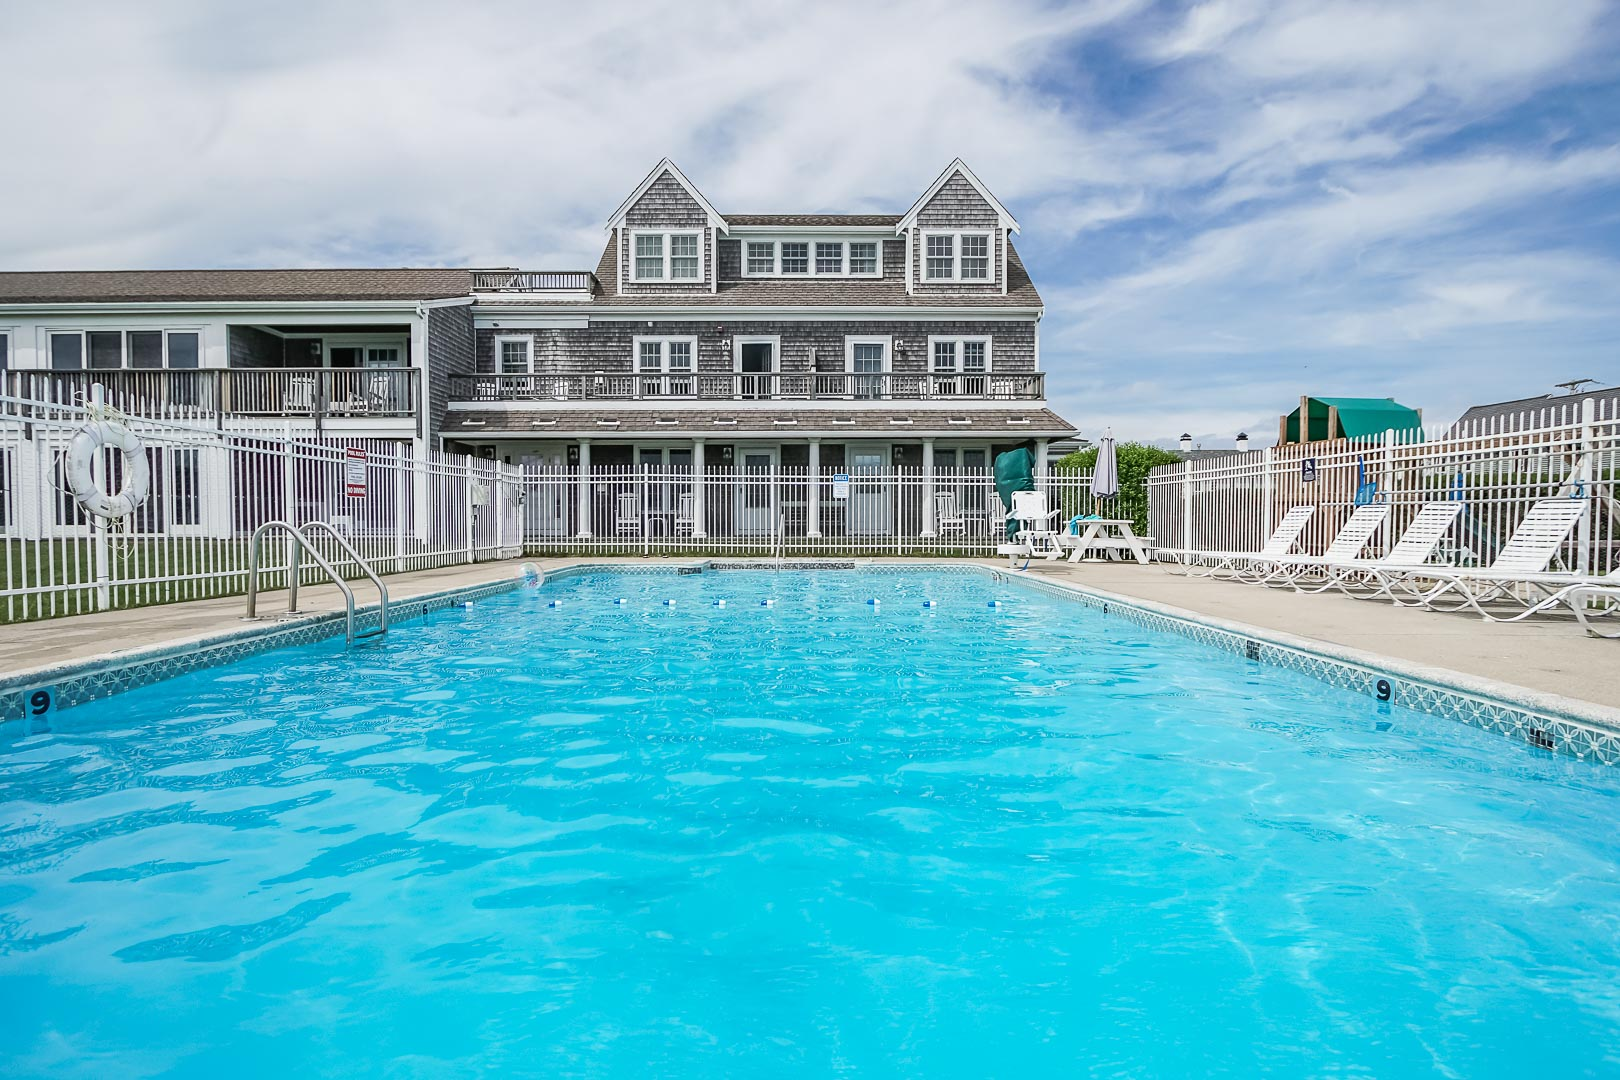 A crisp pool at VRI's Beachside Village Resort in Massachusetts.